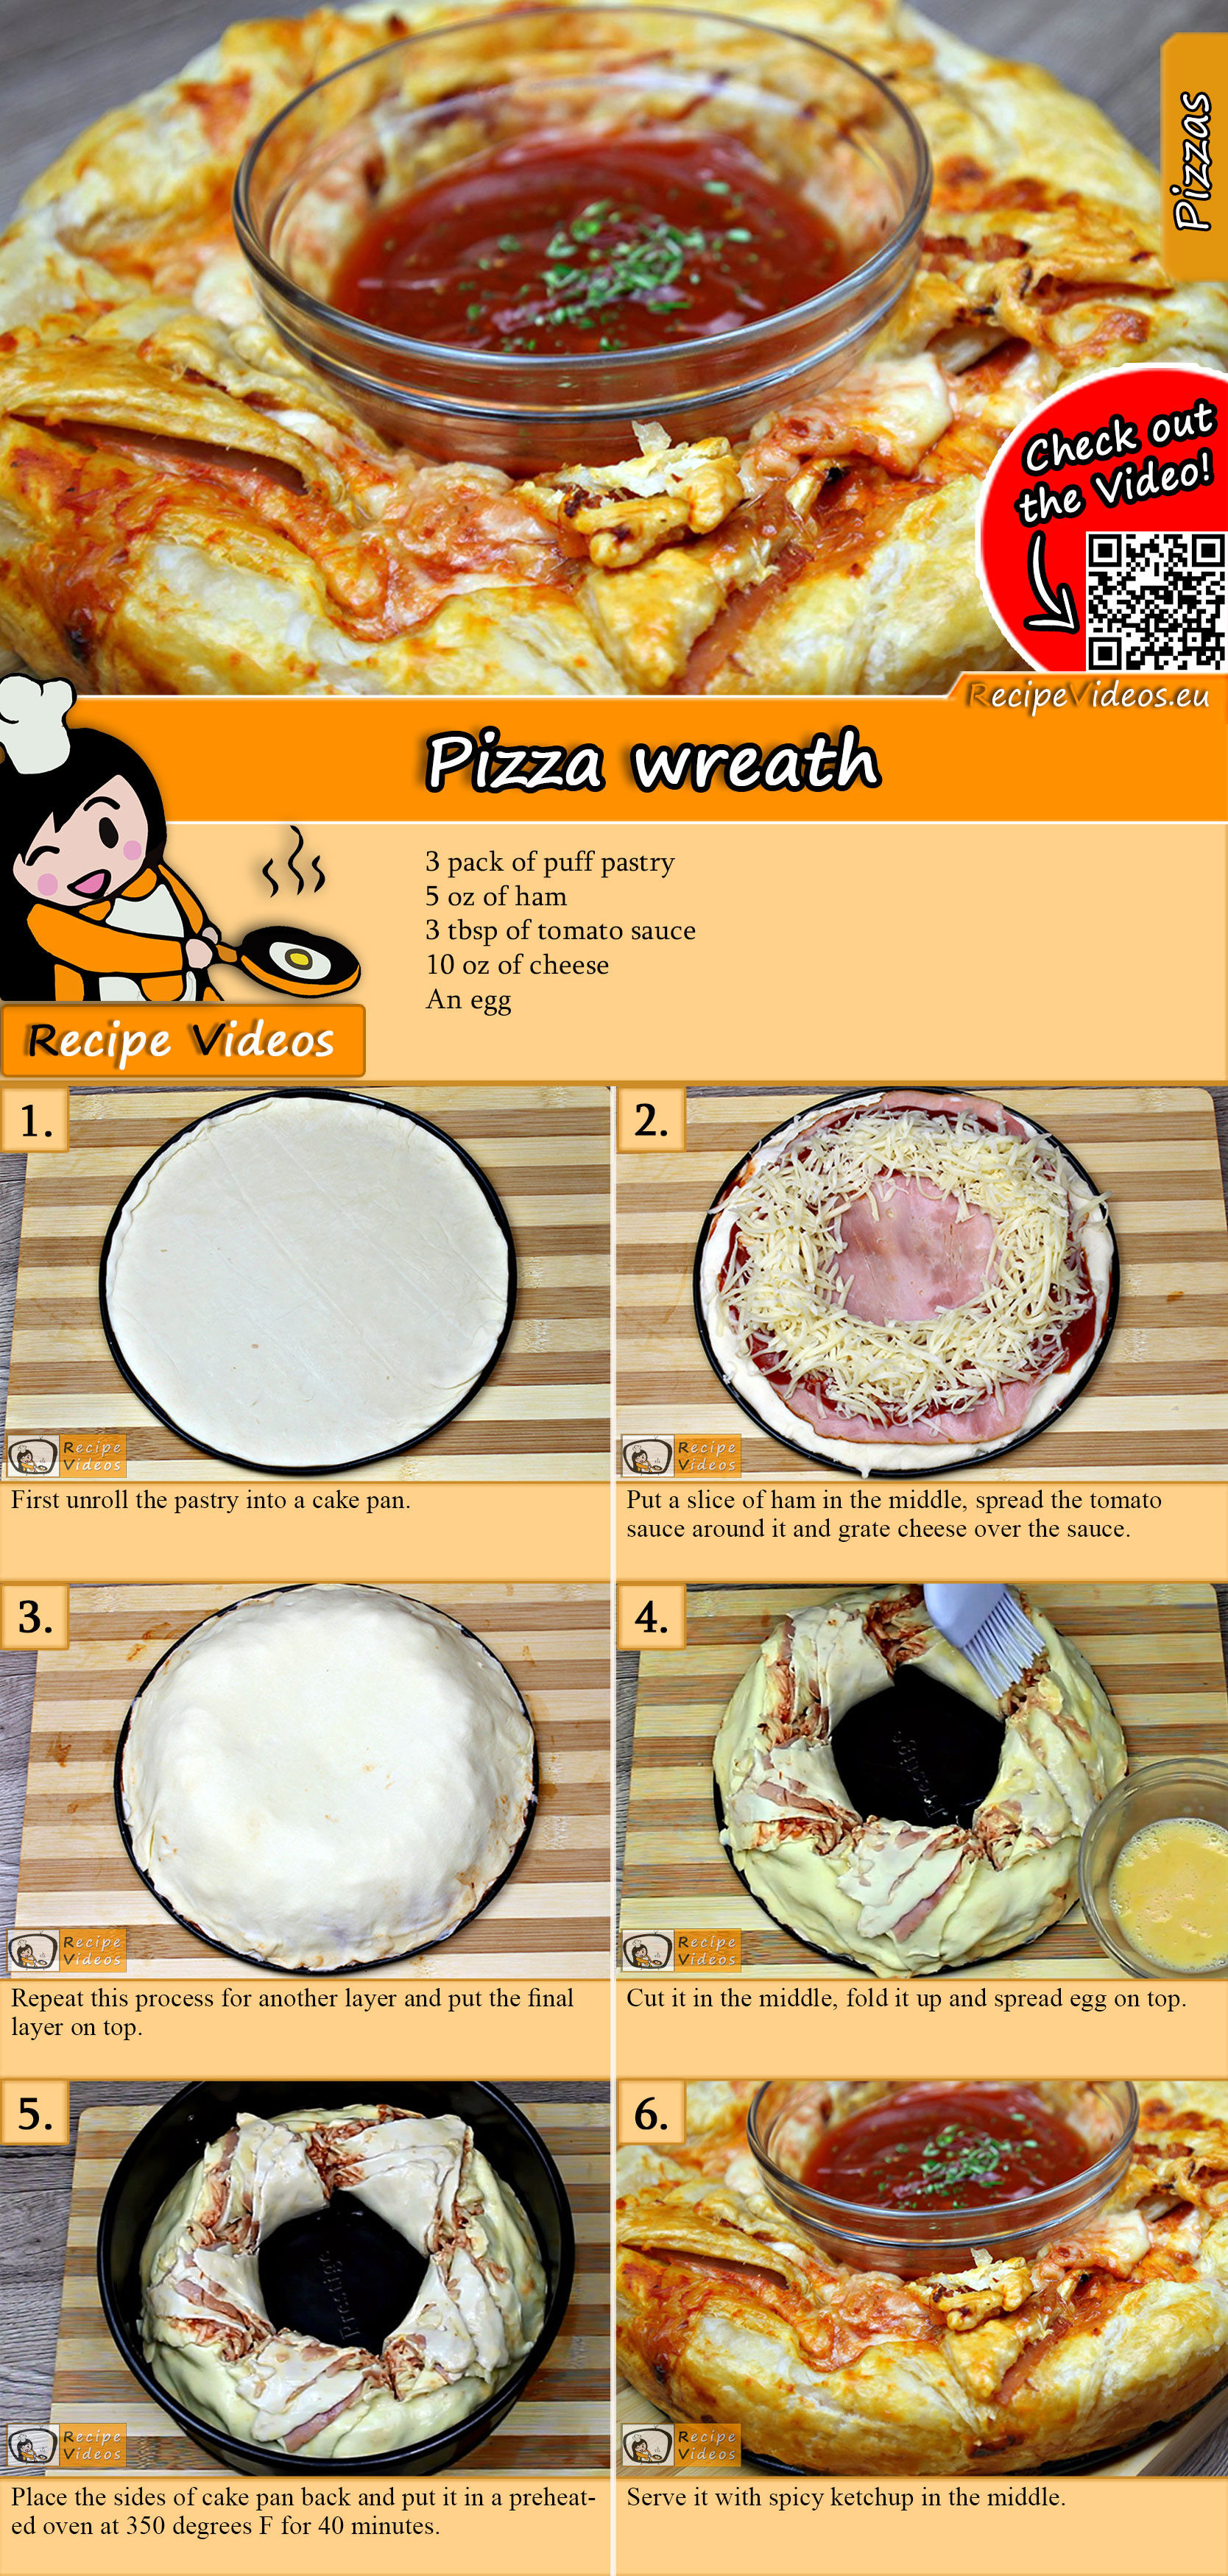 Pizza wreath recipe with video